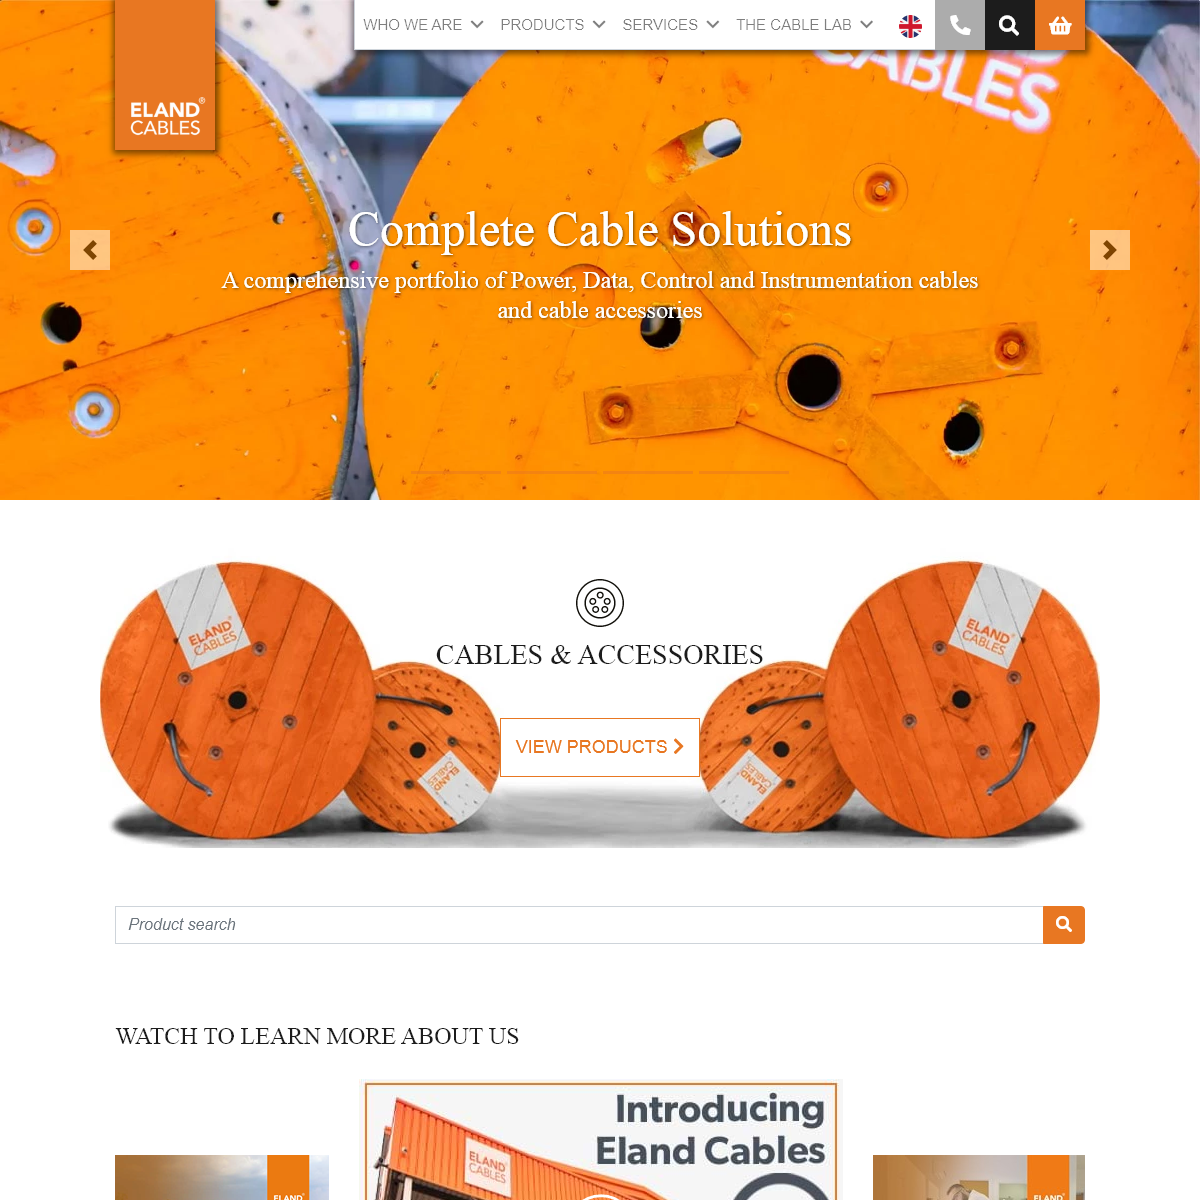 Global Cables and Cable Accessories Supplier - Eland Cables